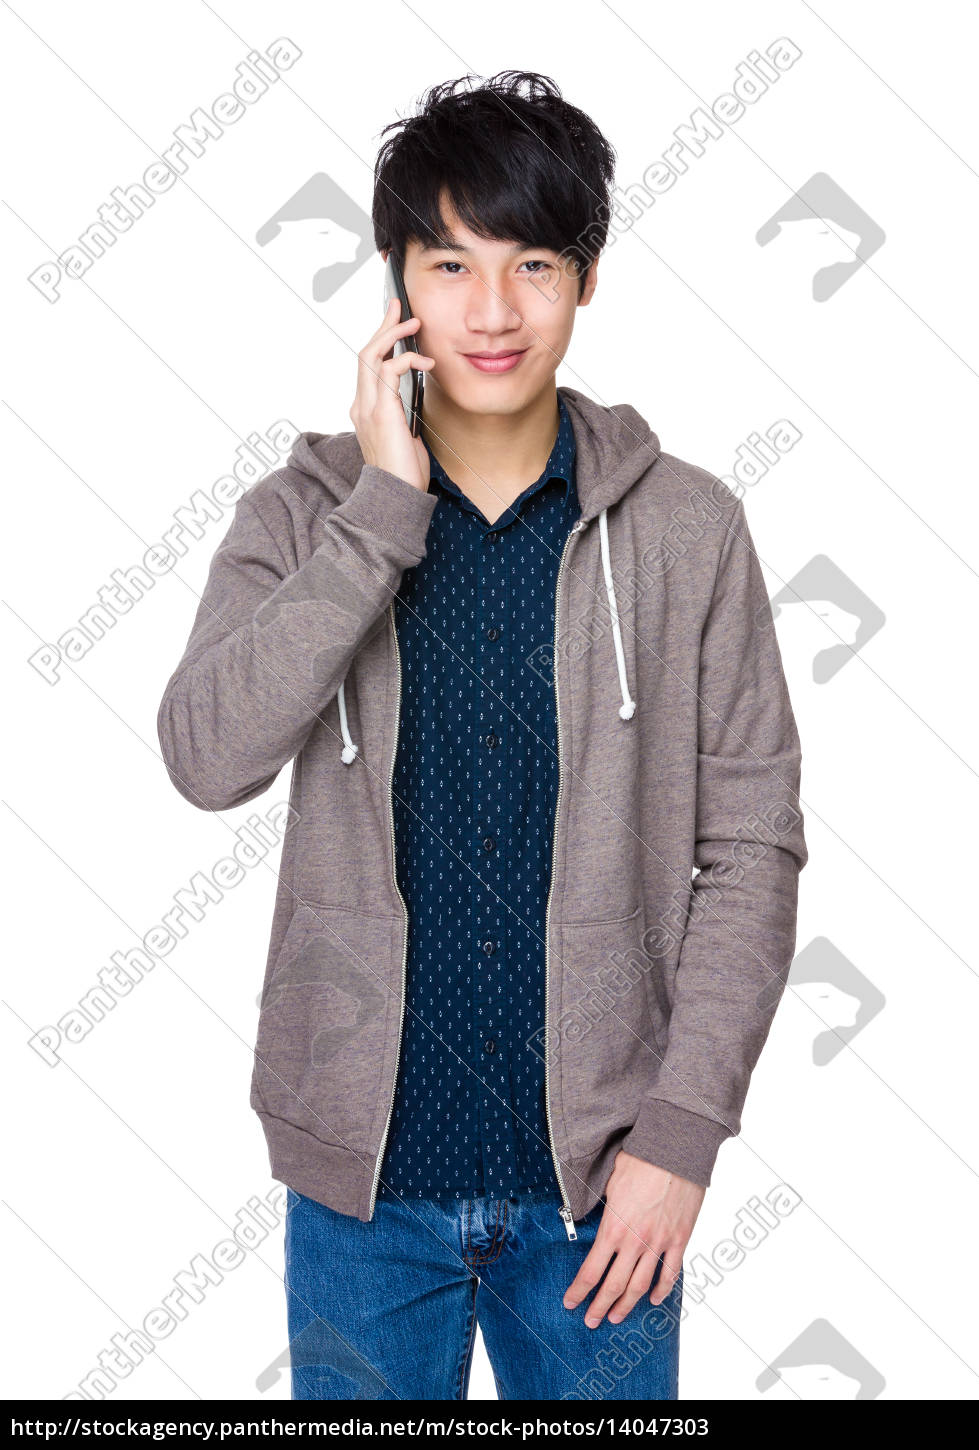 guy, telephone, phone, talk, speaking, speaks - 14047303